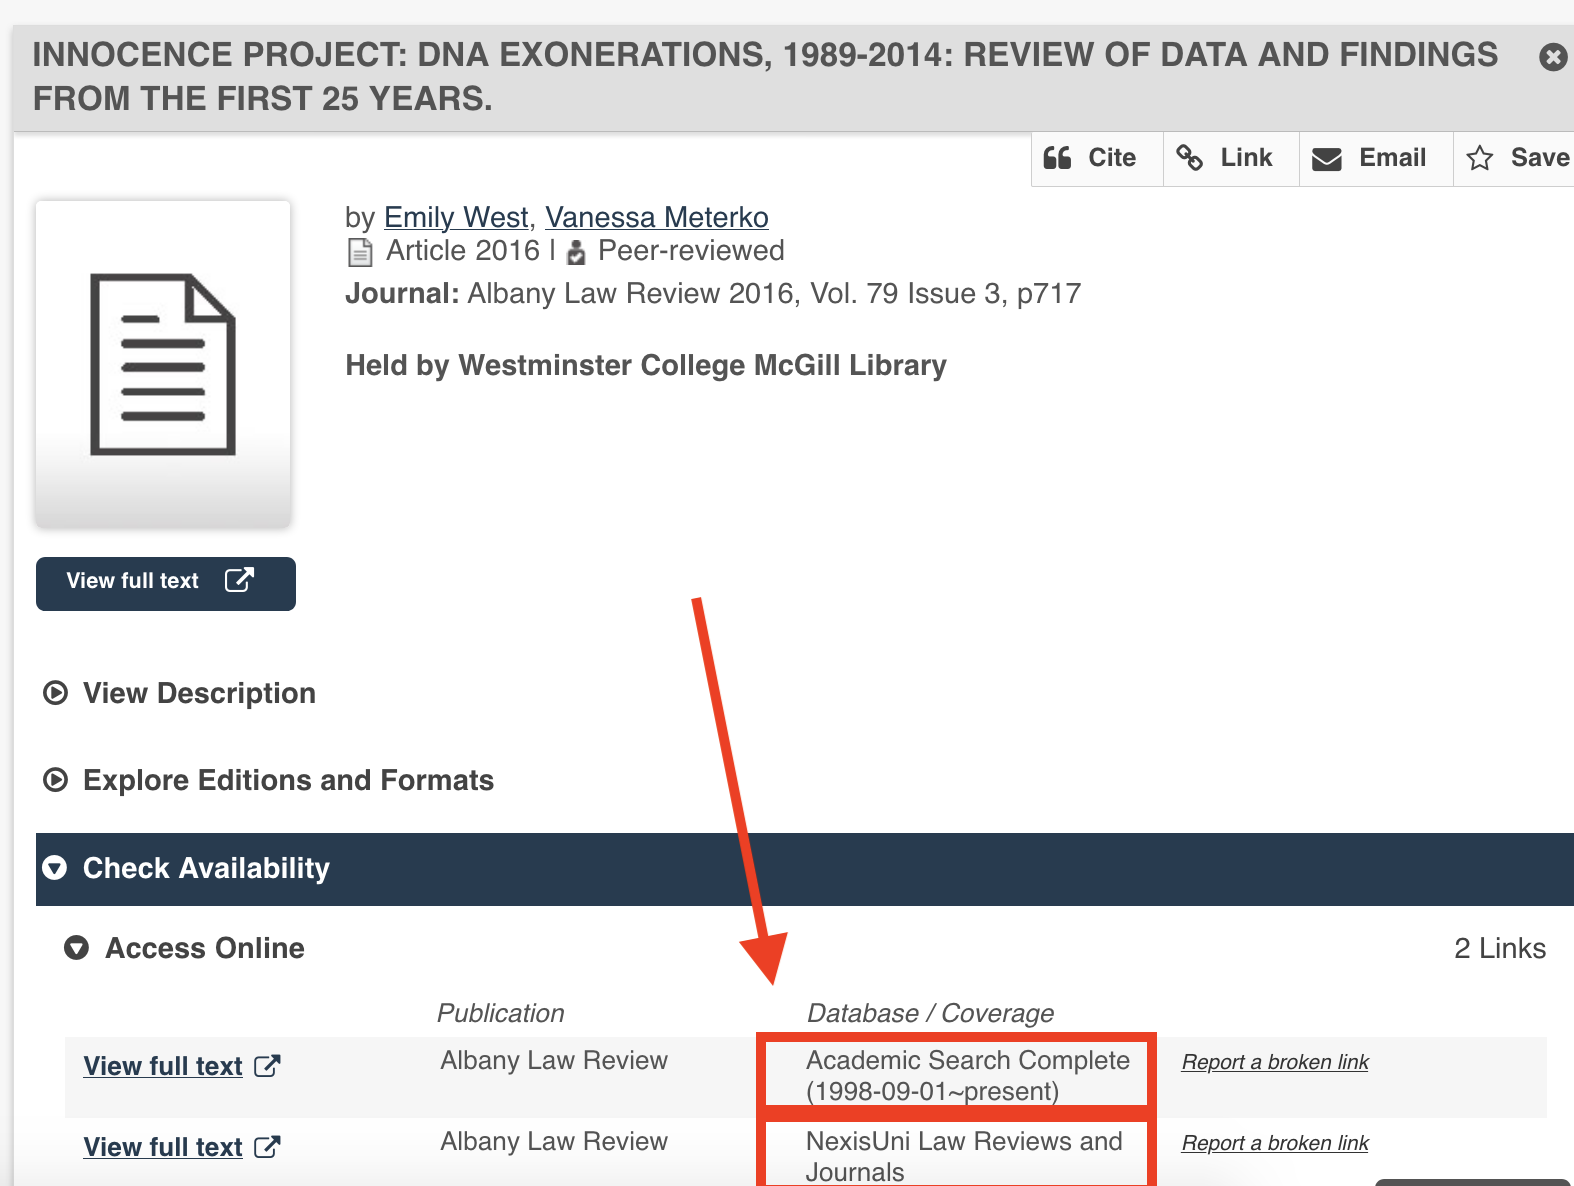 Screenshot of a WISE record showing the database listed under Check Availibity